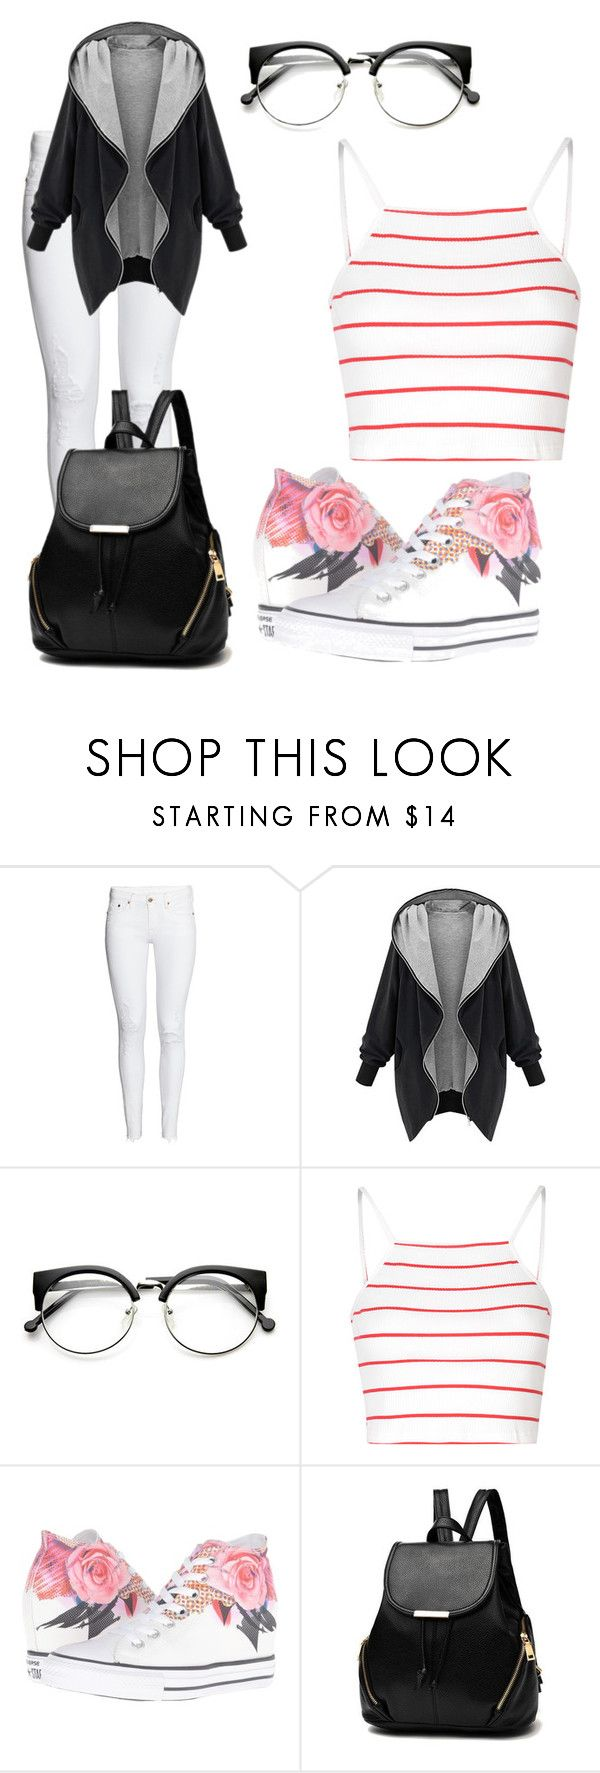 """""""Untitled #255"""" by bihesteves ❤ liked on Polyvore featuring Glamorous and Converse"""